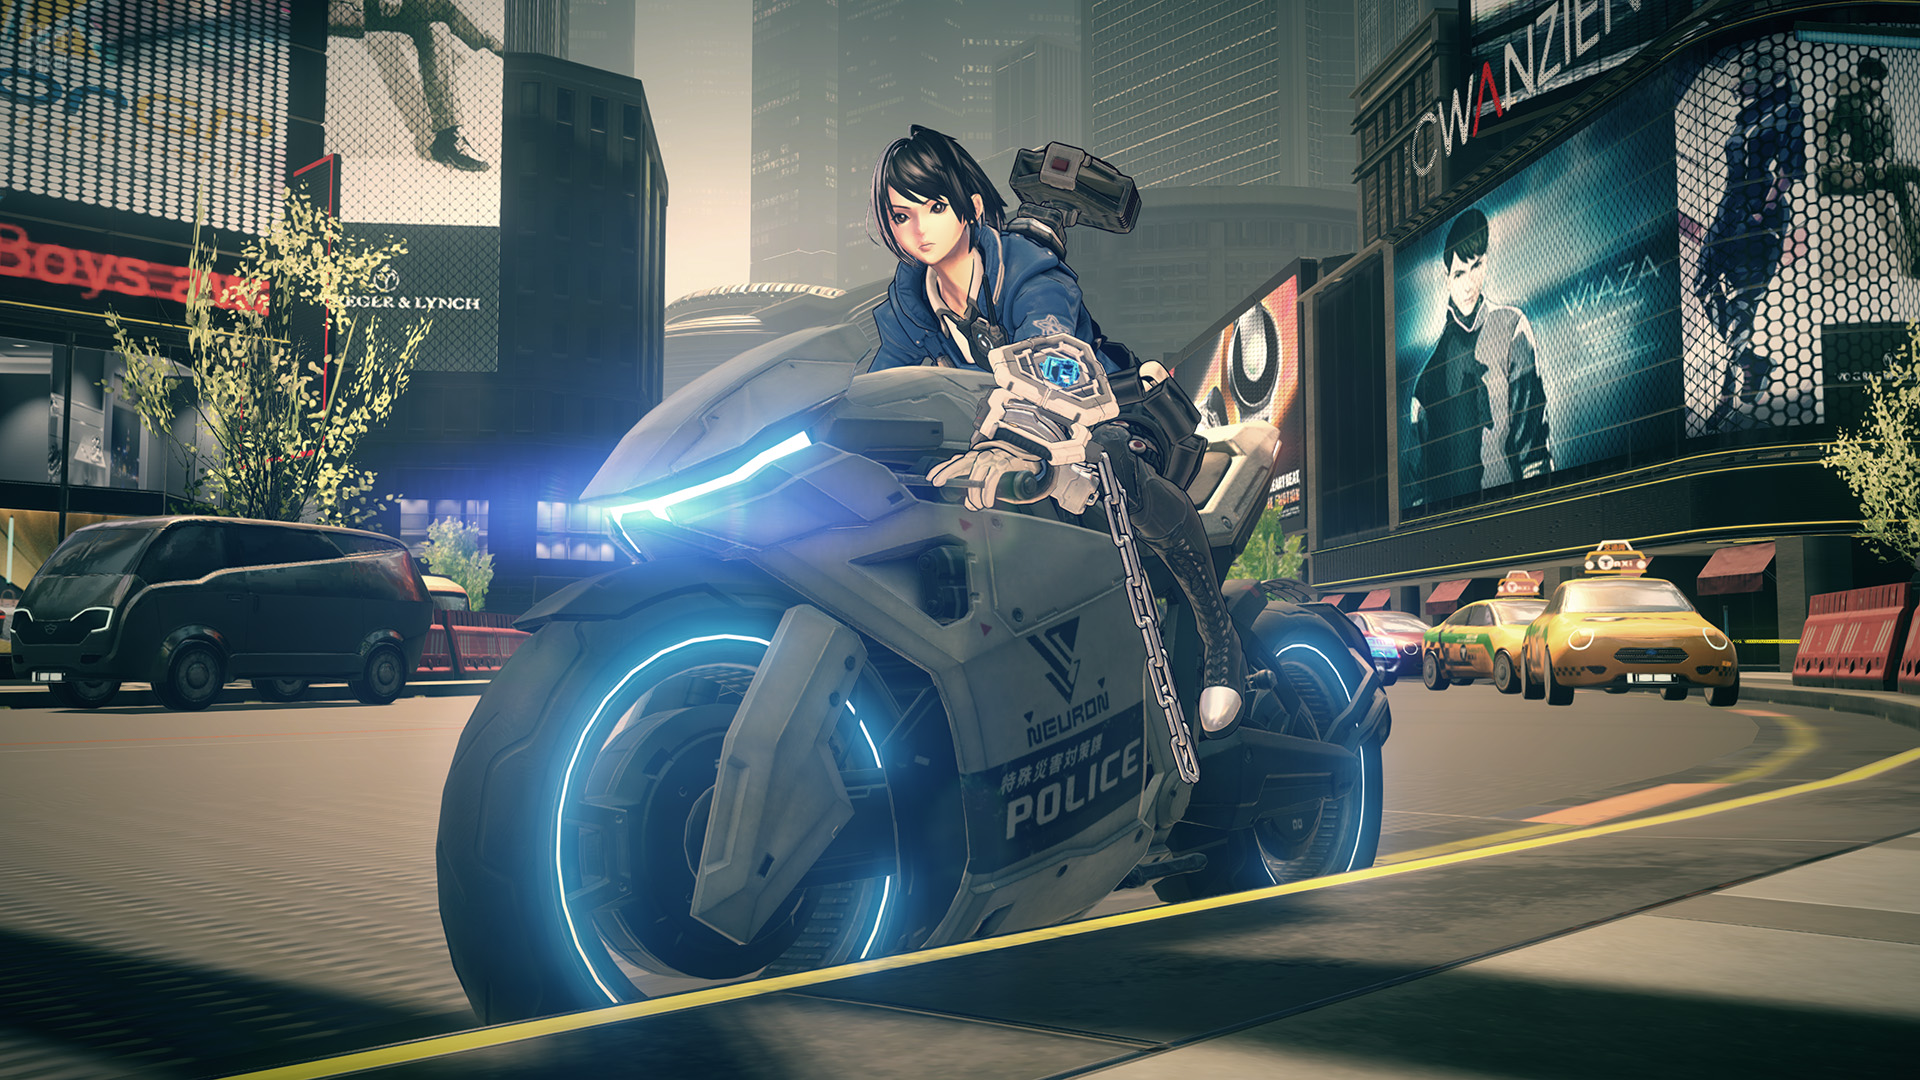 video game astral chain wallpaper 67551